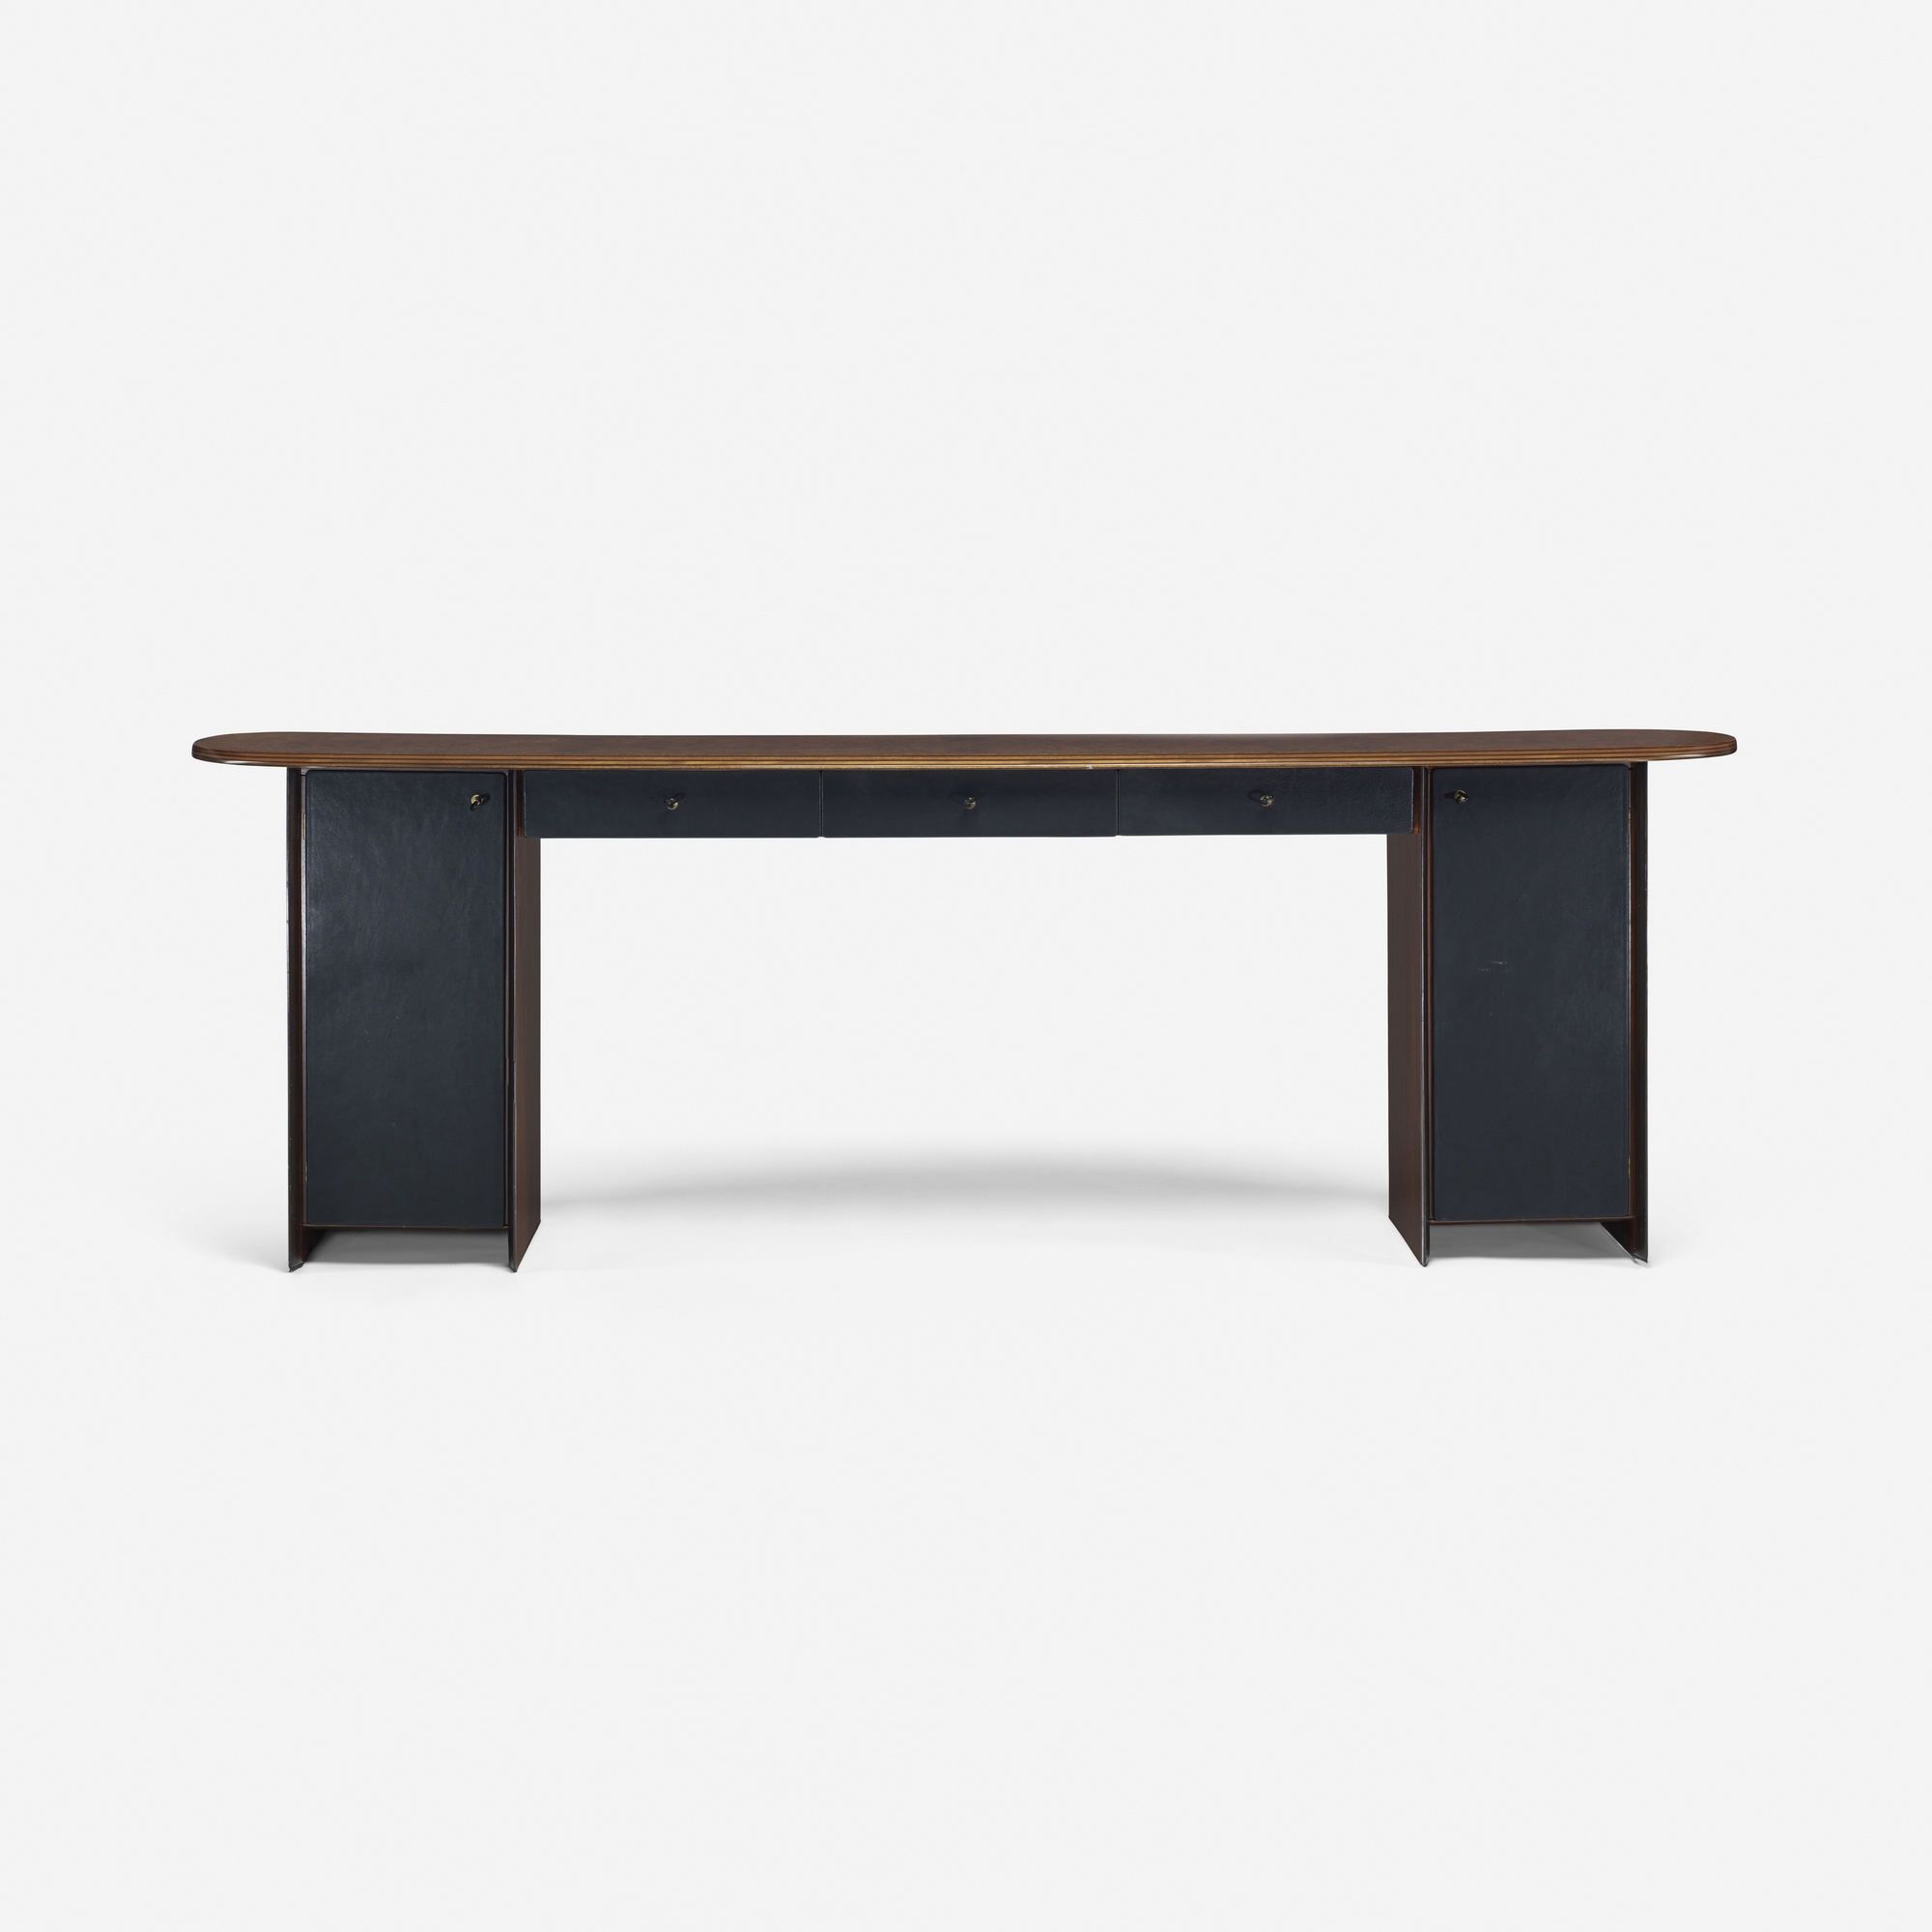 716: Afra and Tobia Scarpa / Artona console (2 of 3)